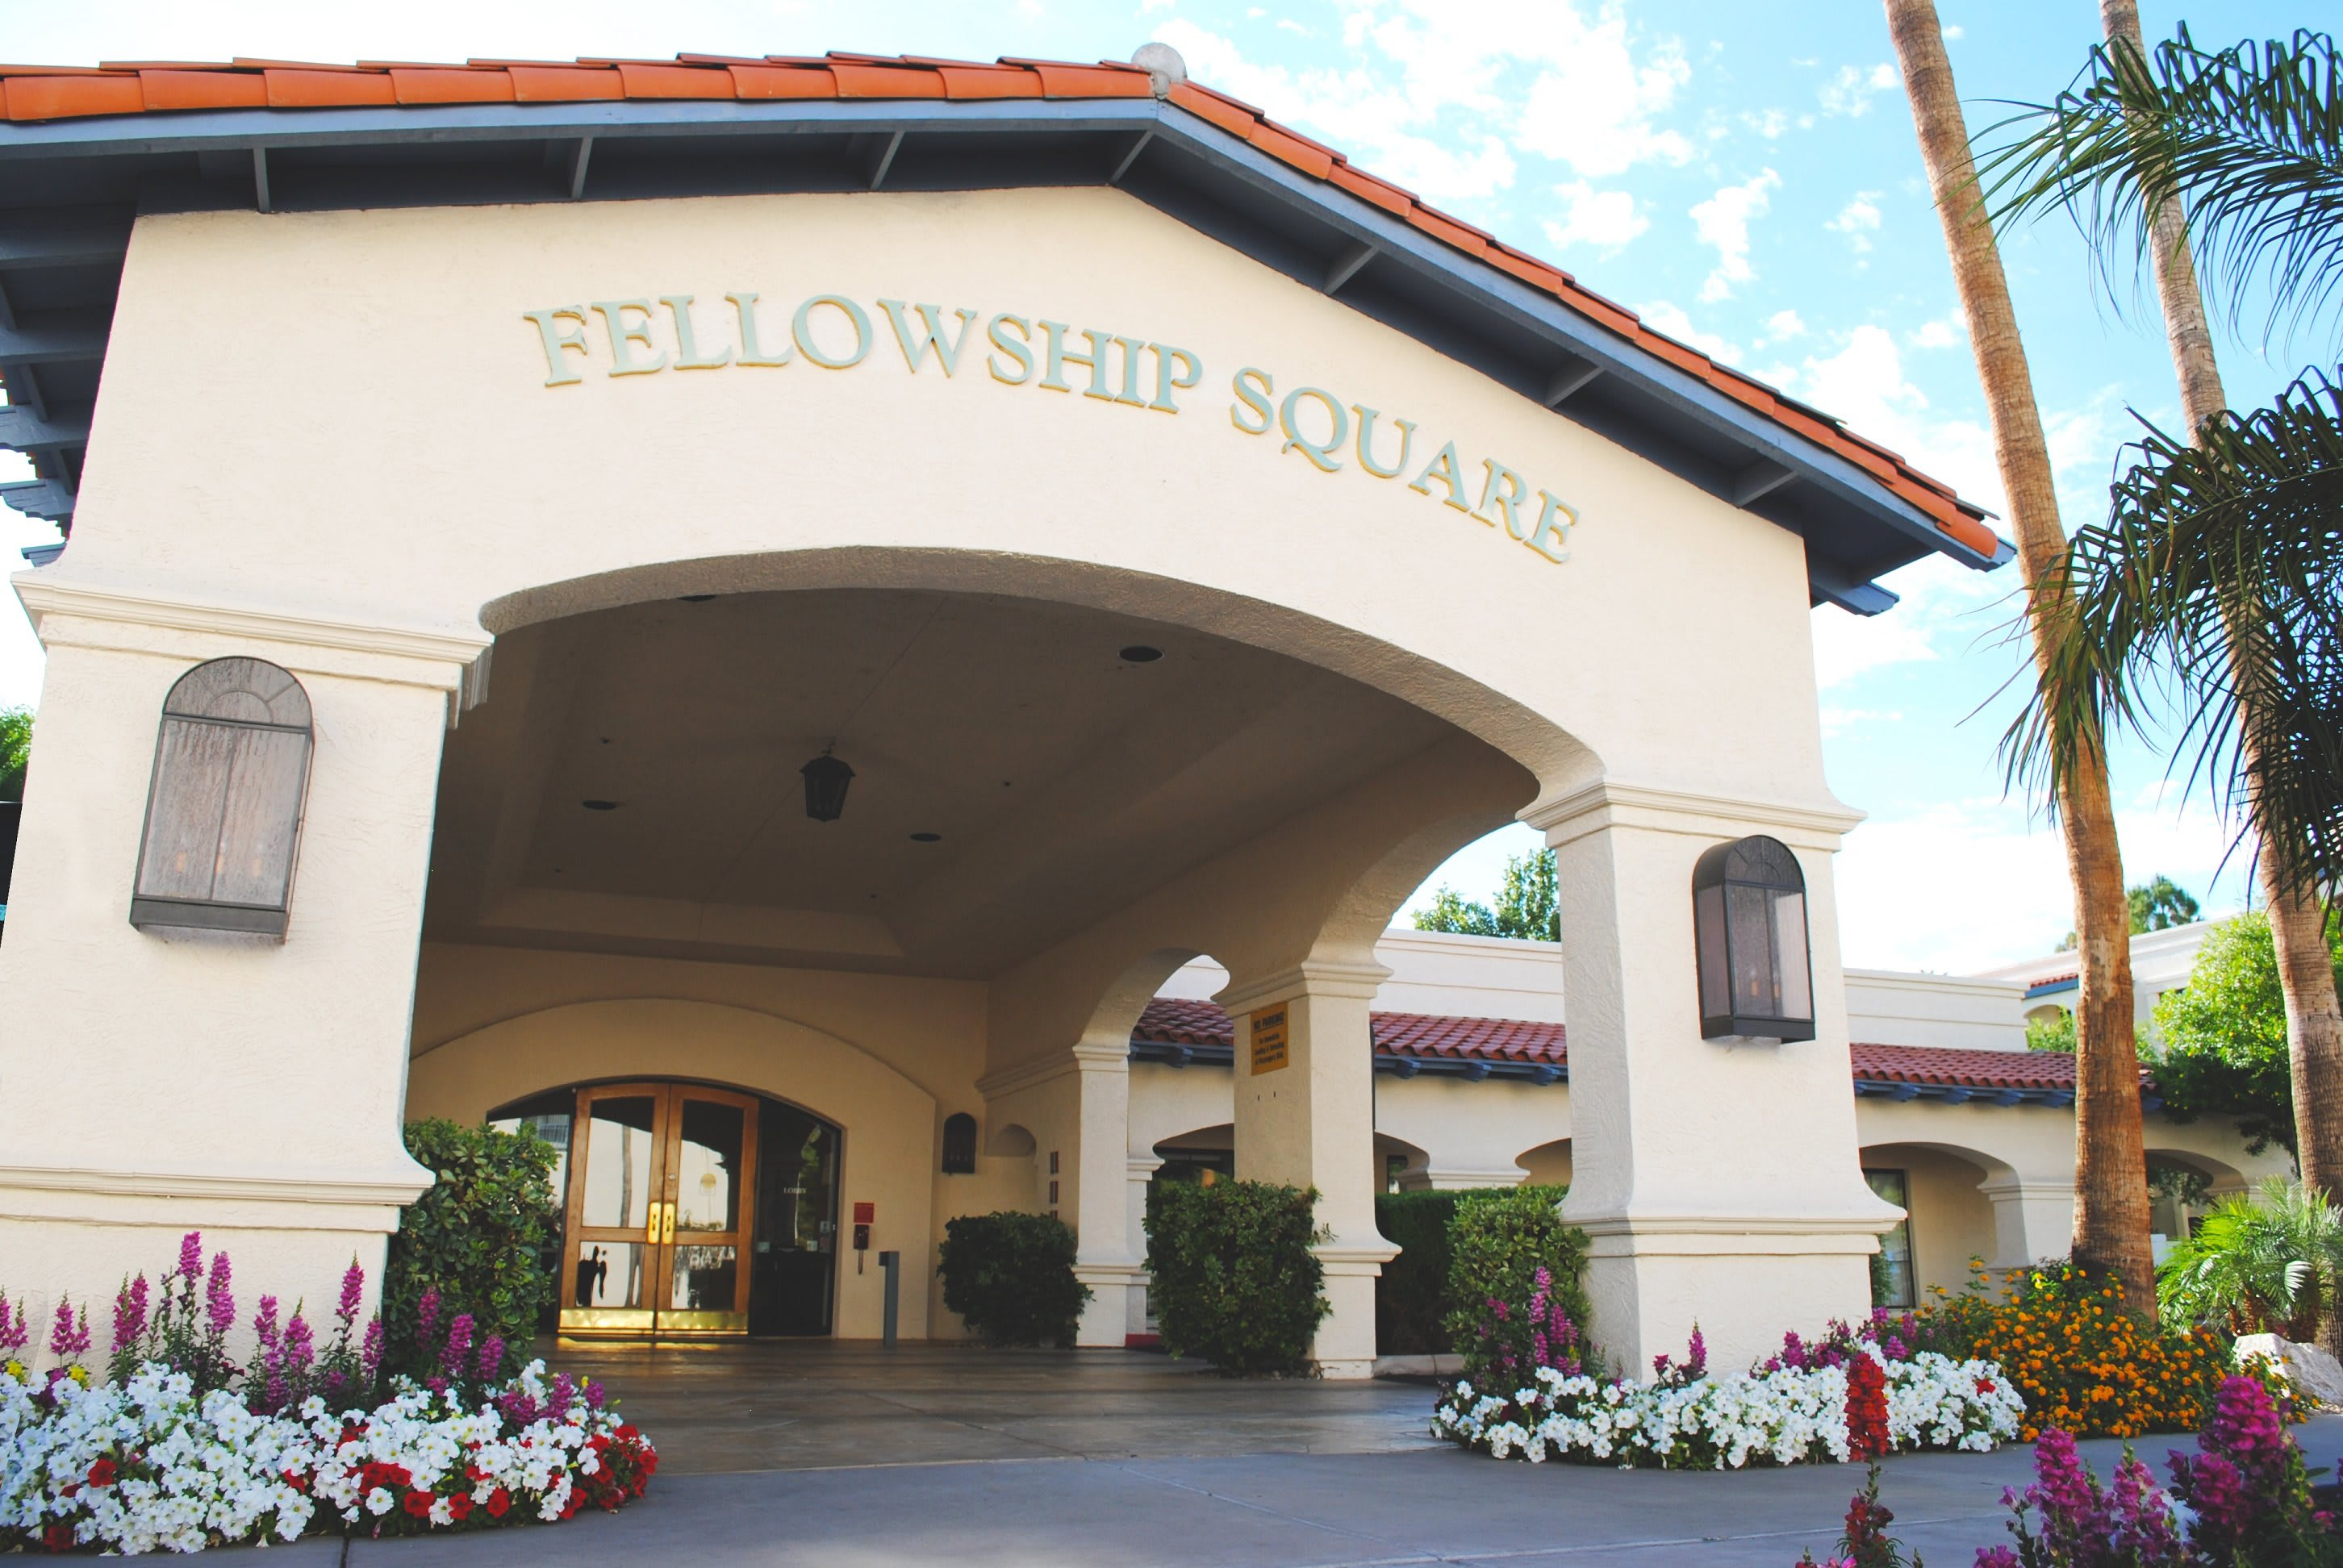 Photo 1 of Fellowship Square Phoenix (a Life Plan Community)